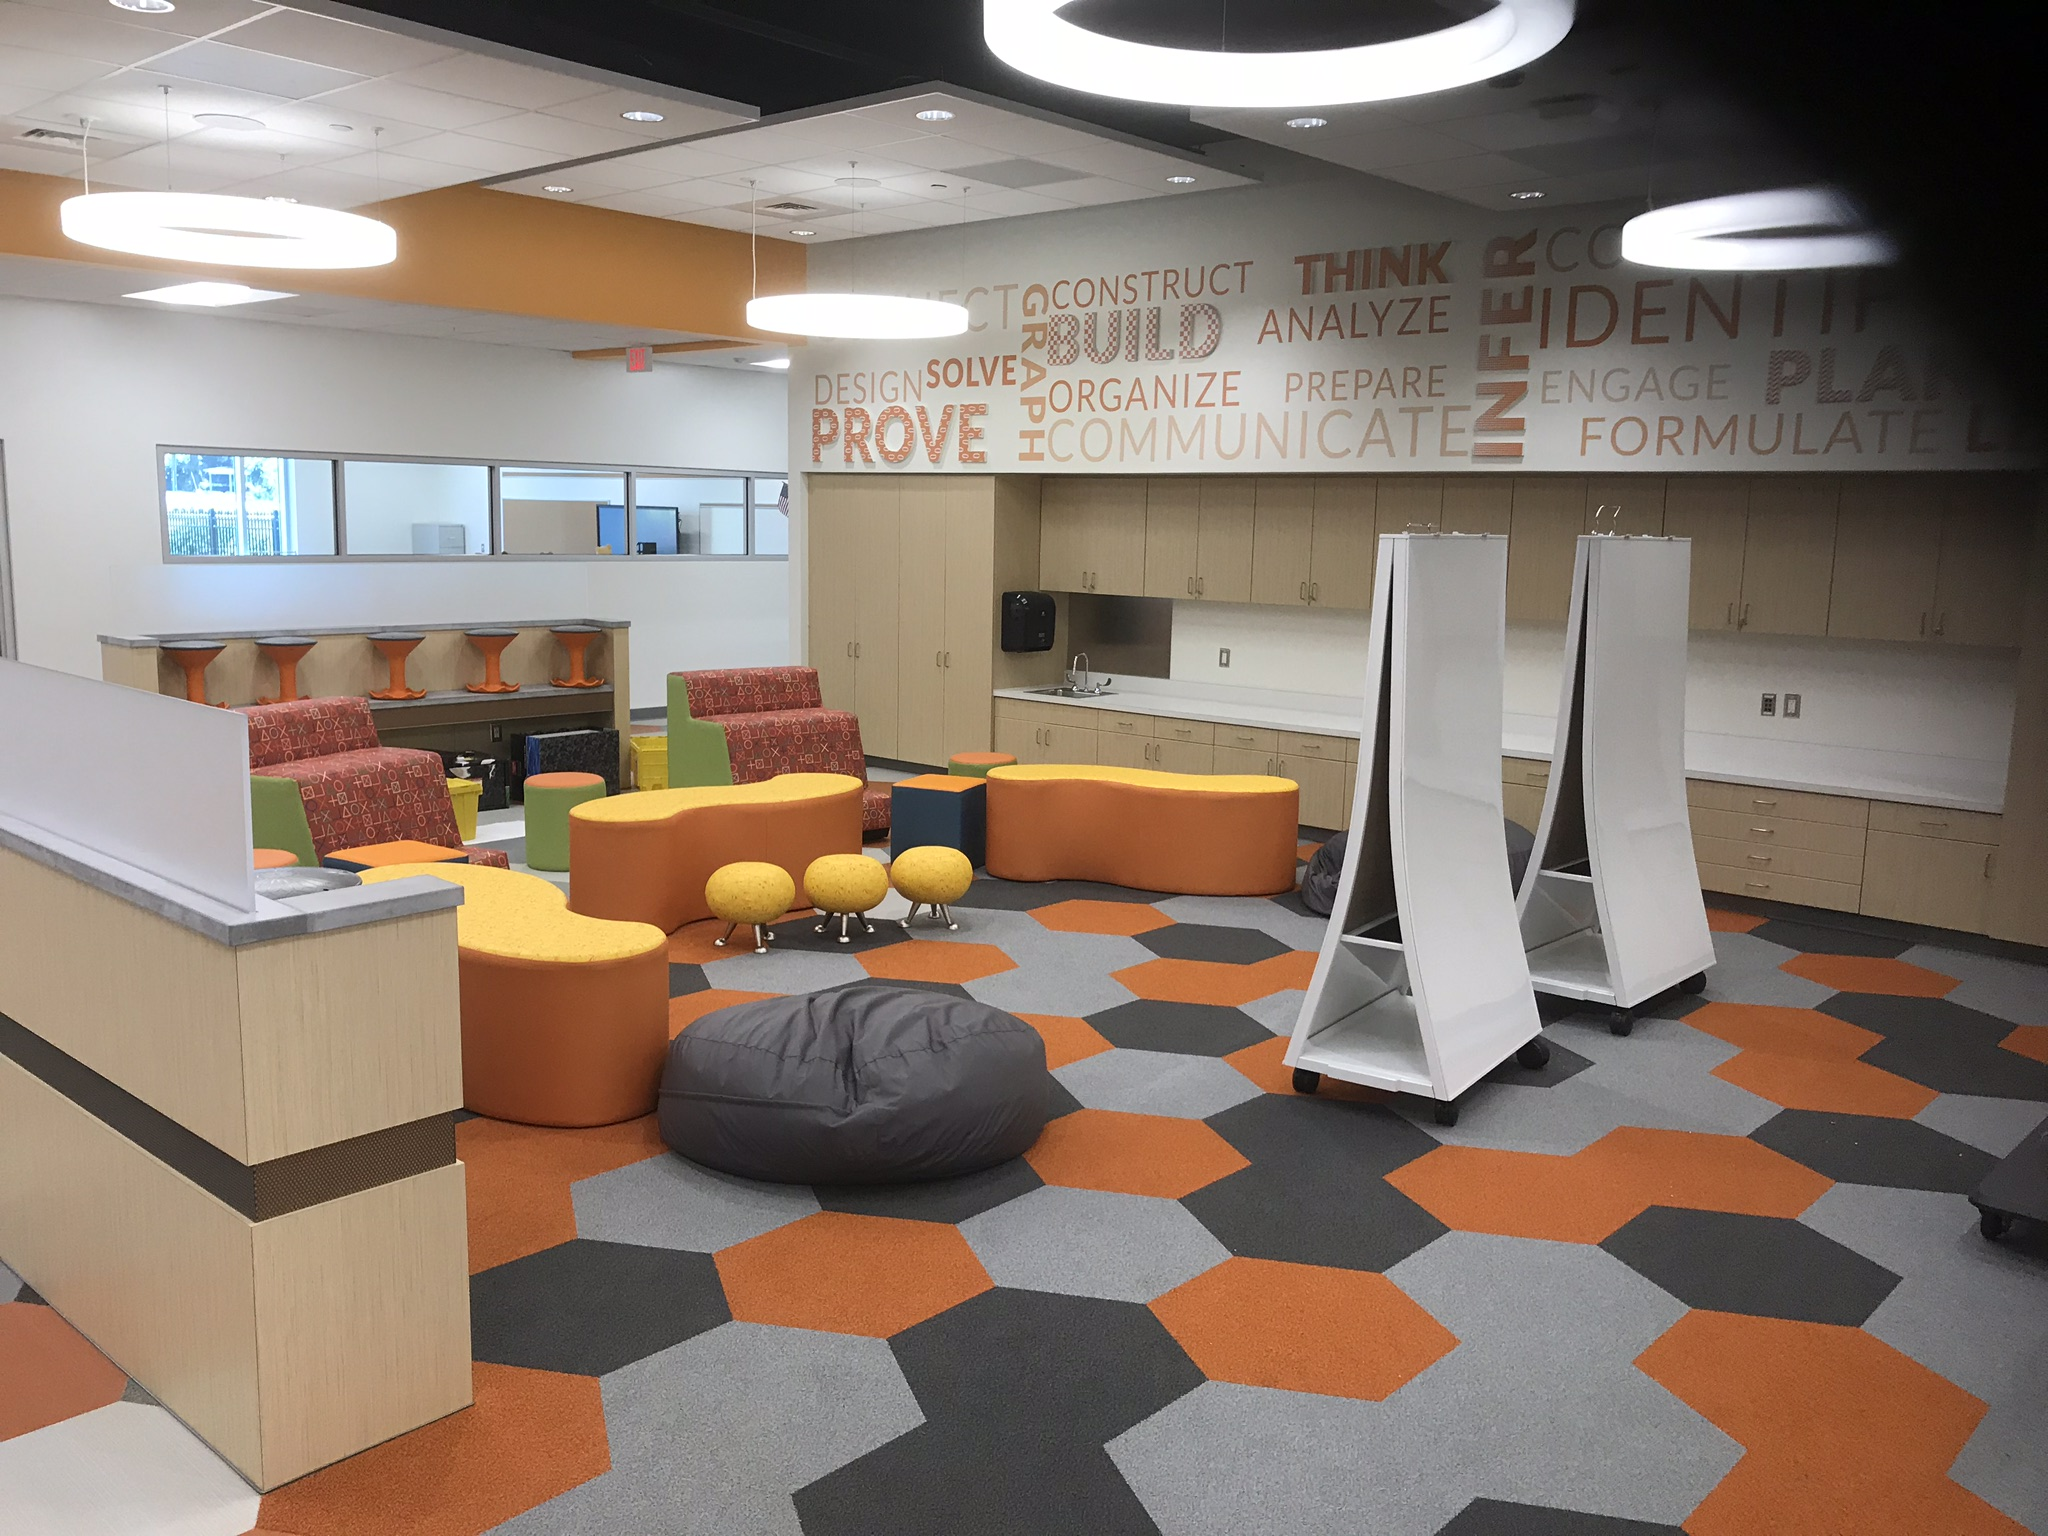 Creative floors for an inspiring new school